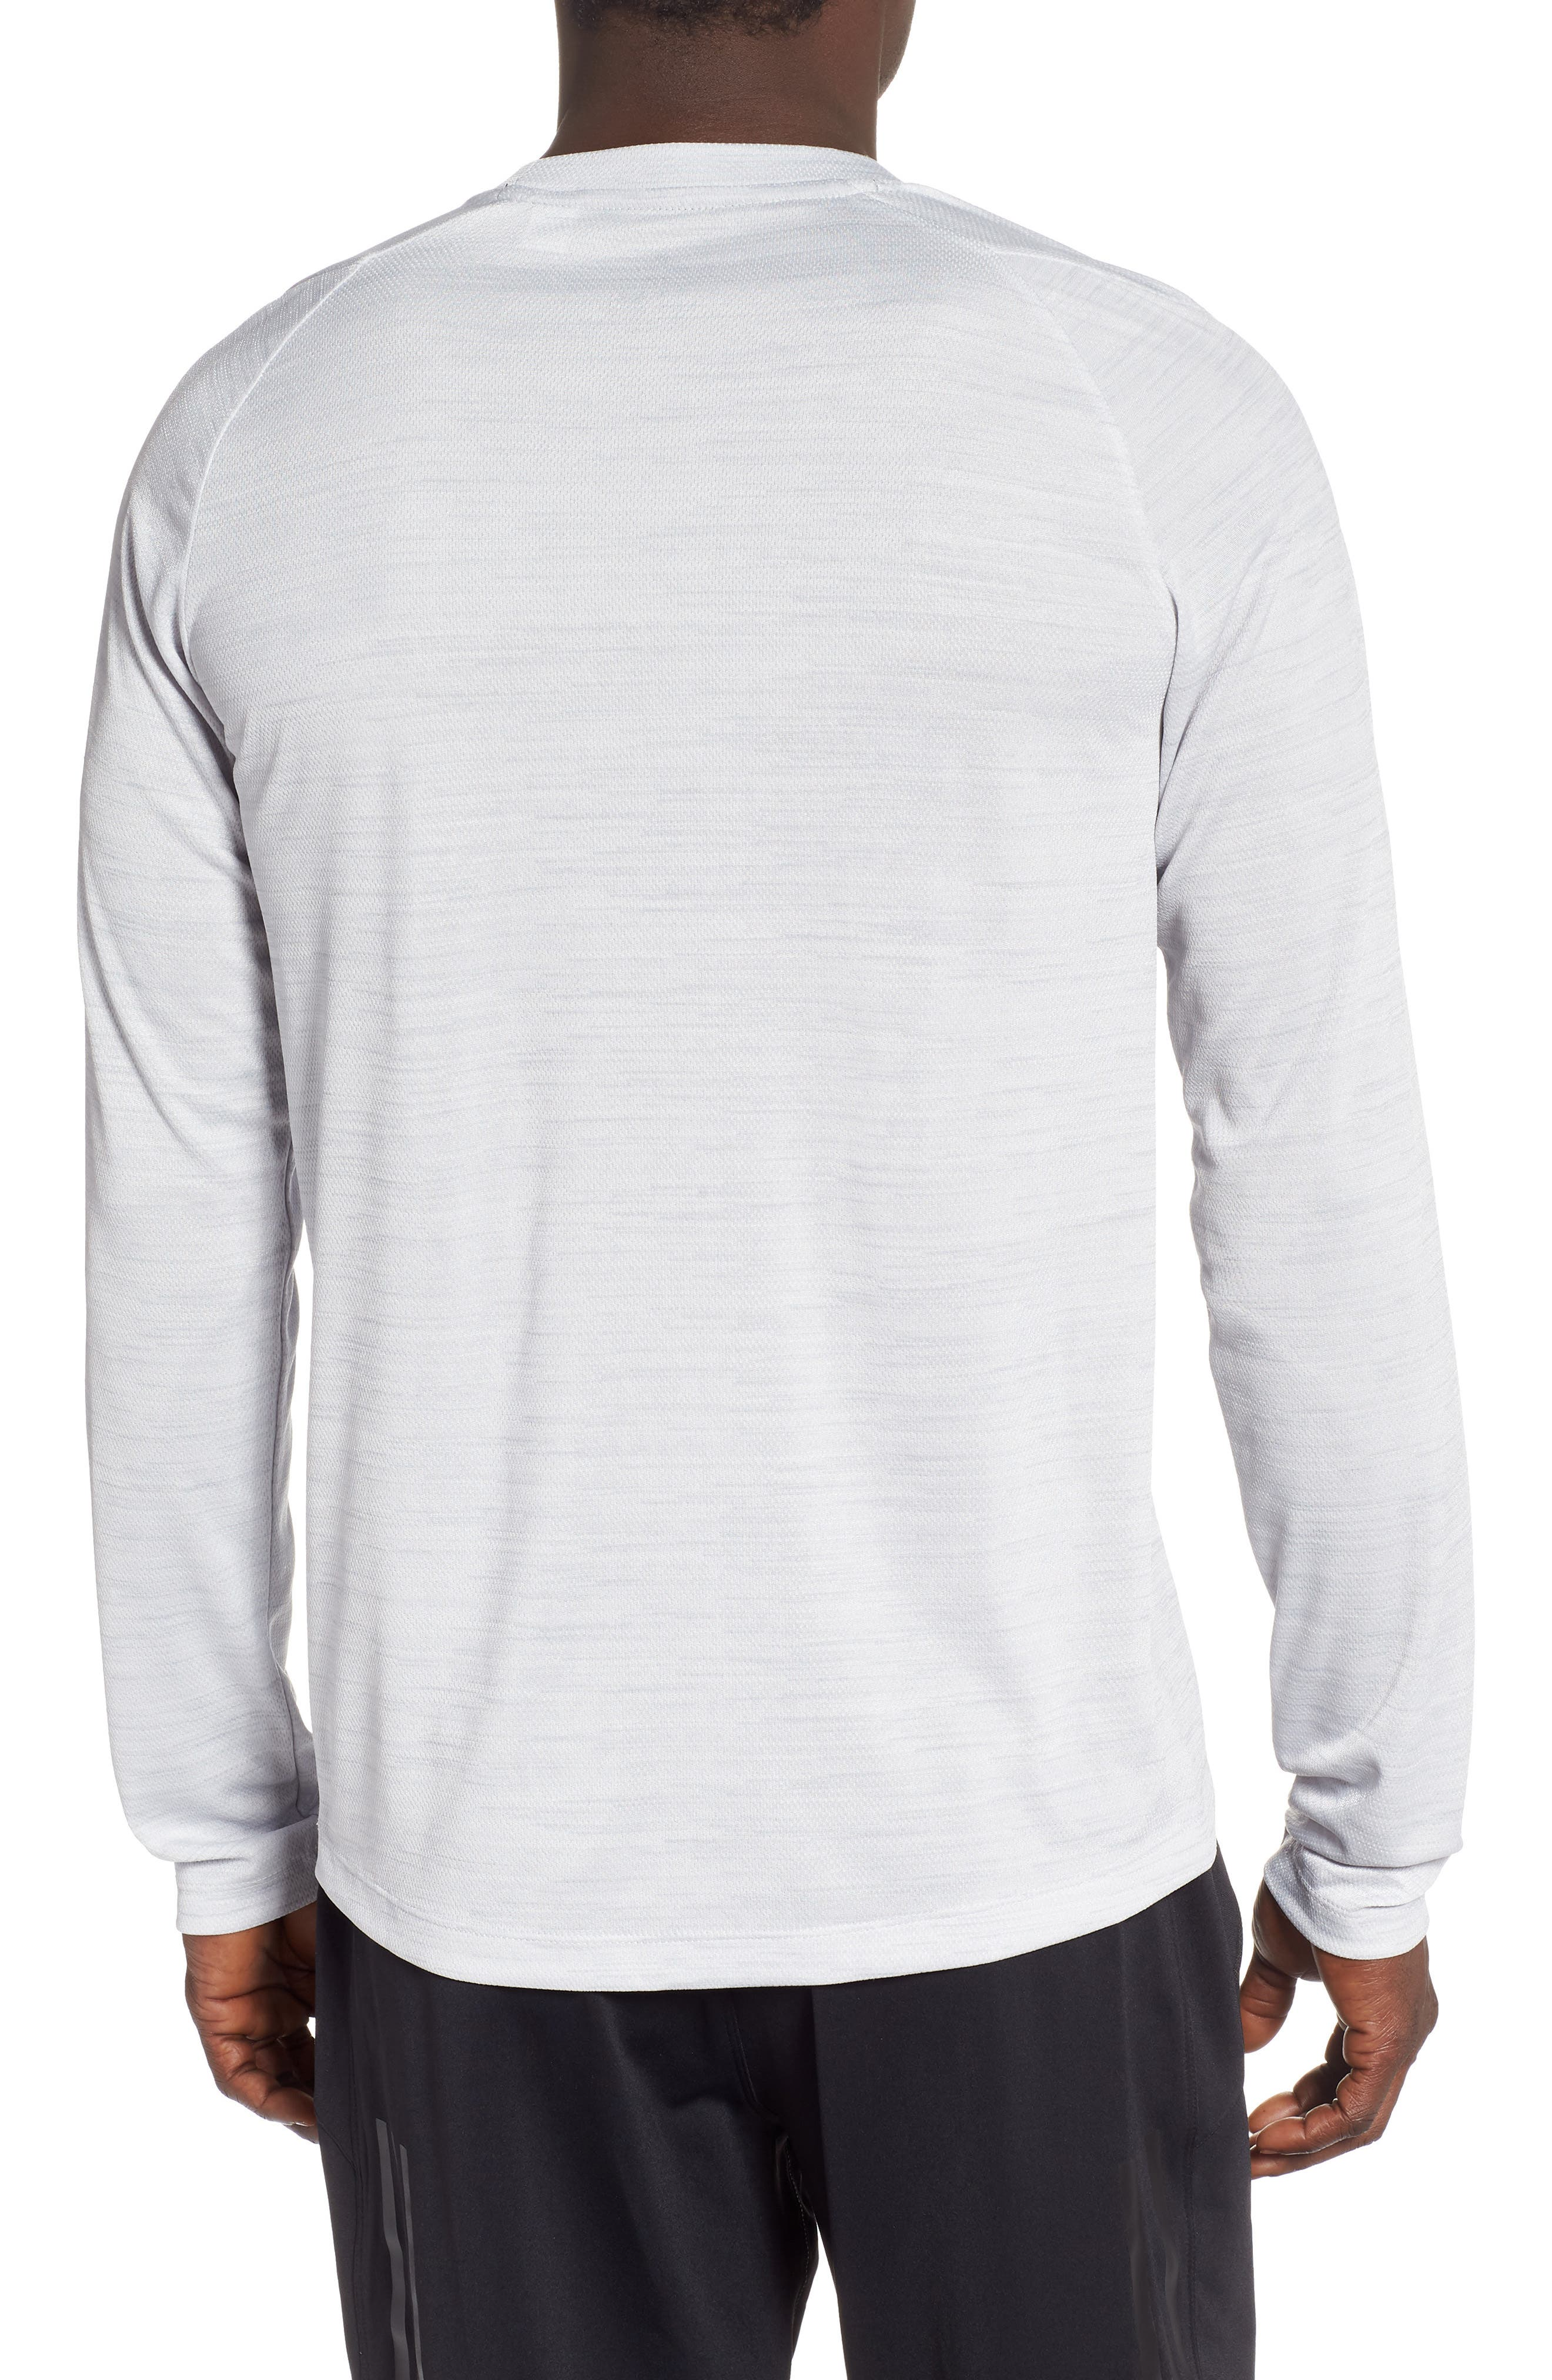 Freelift Prim Long Sleeve T-Shirt,                             Alternate thumbnail 2, color,                             050